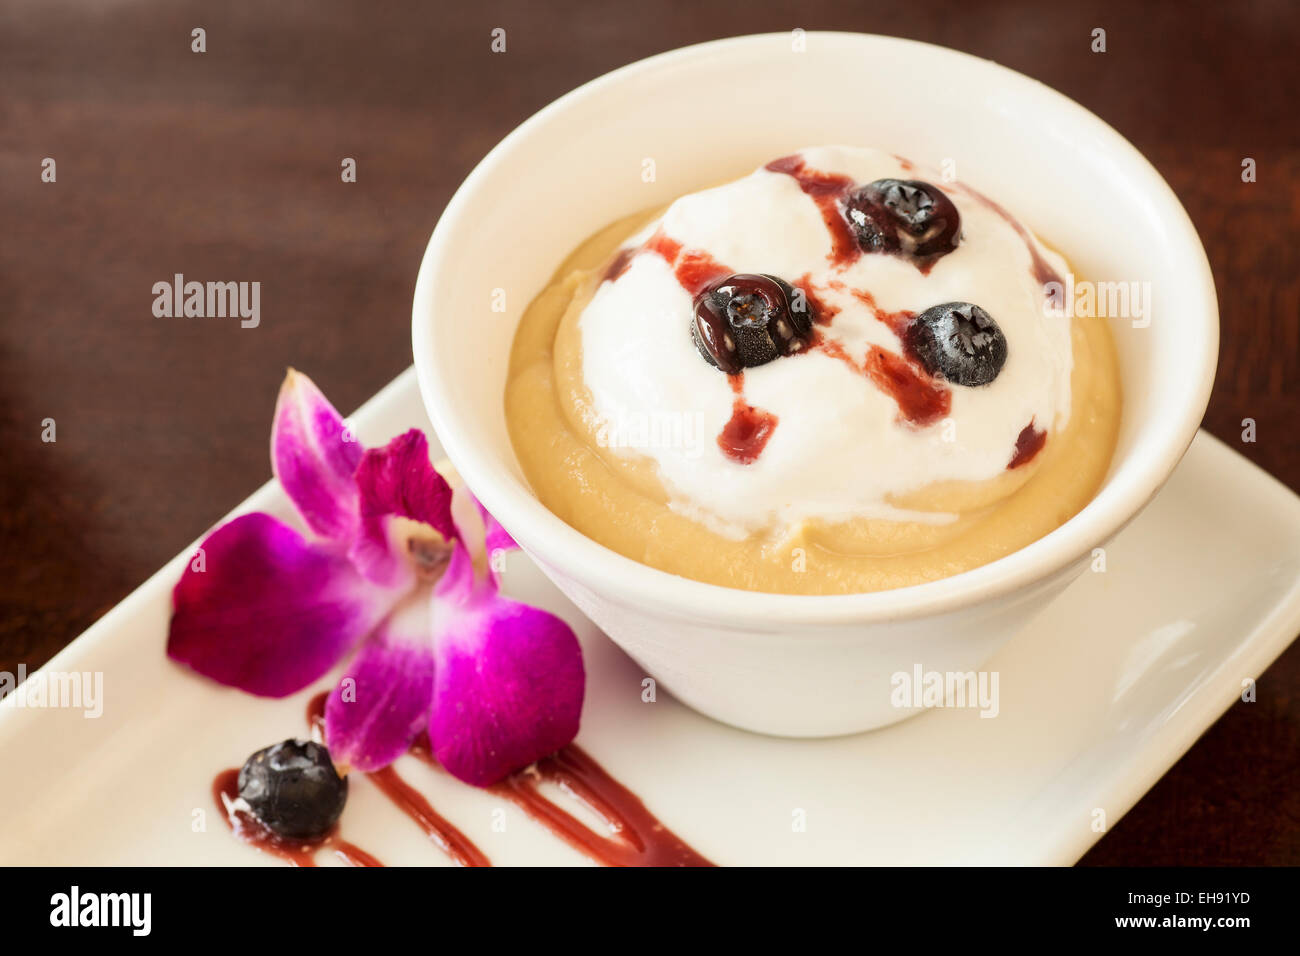 salted caramel pudding, Corktree Cellars Wine Bar & Bistro, Carpinteria, California - Stock Image